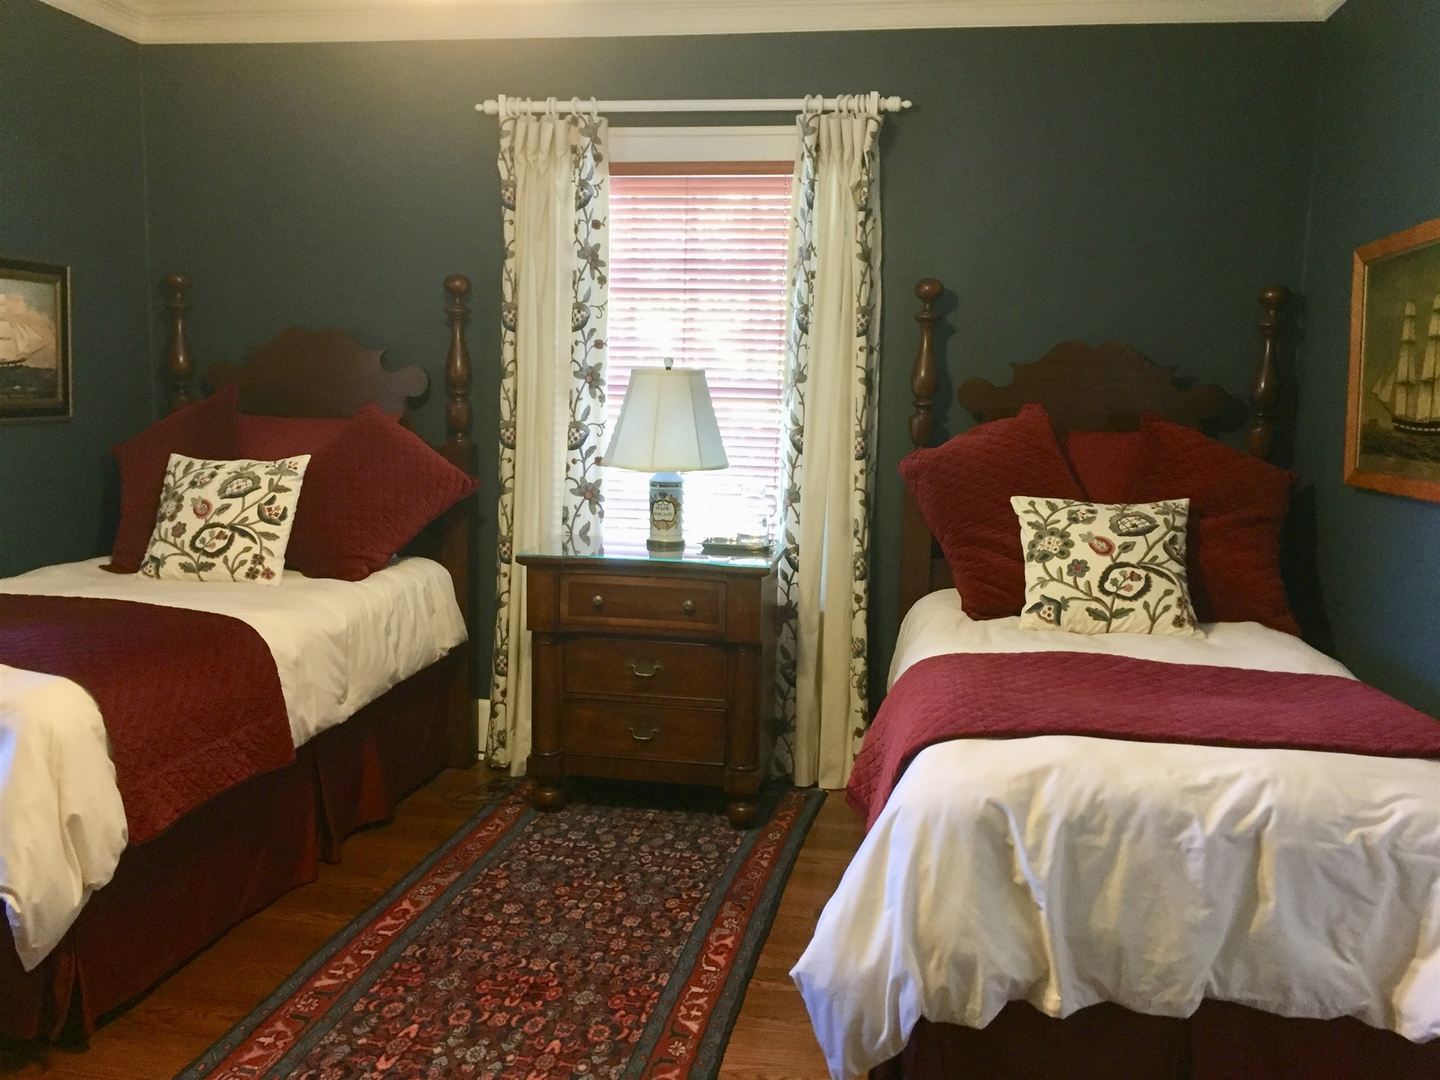 A bedroom with a bed in a room at Sidwell Friends Bed and Breakfast.